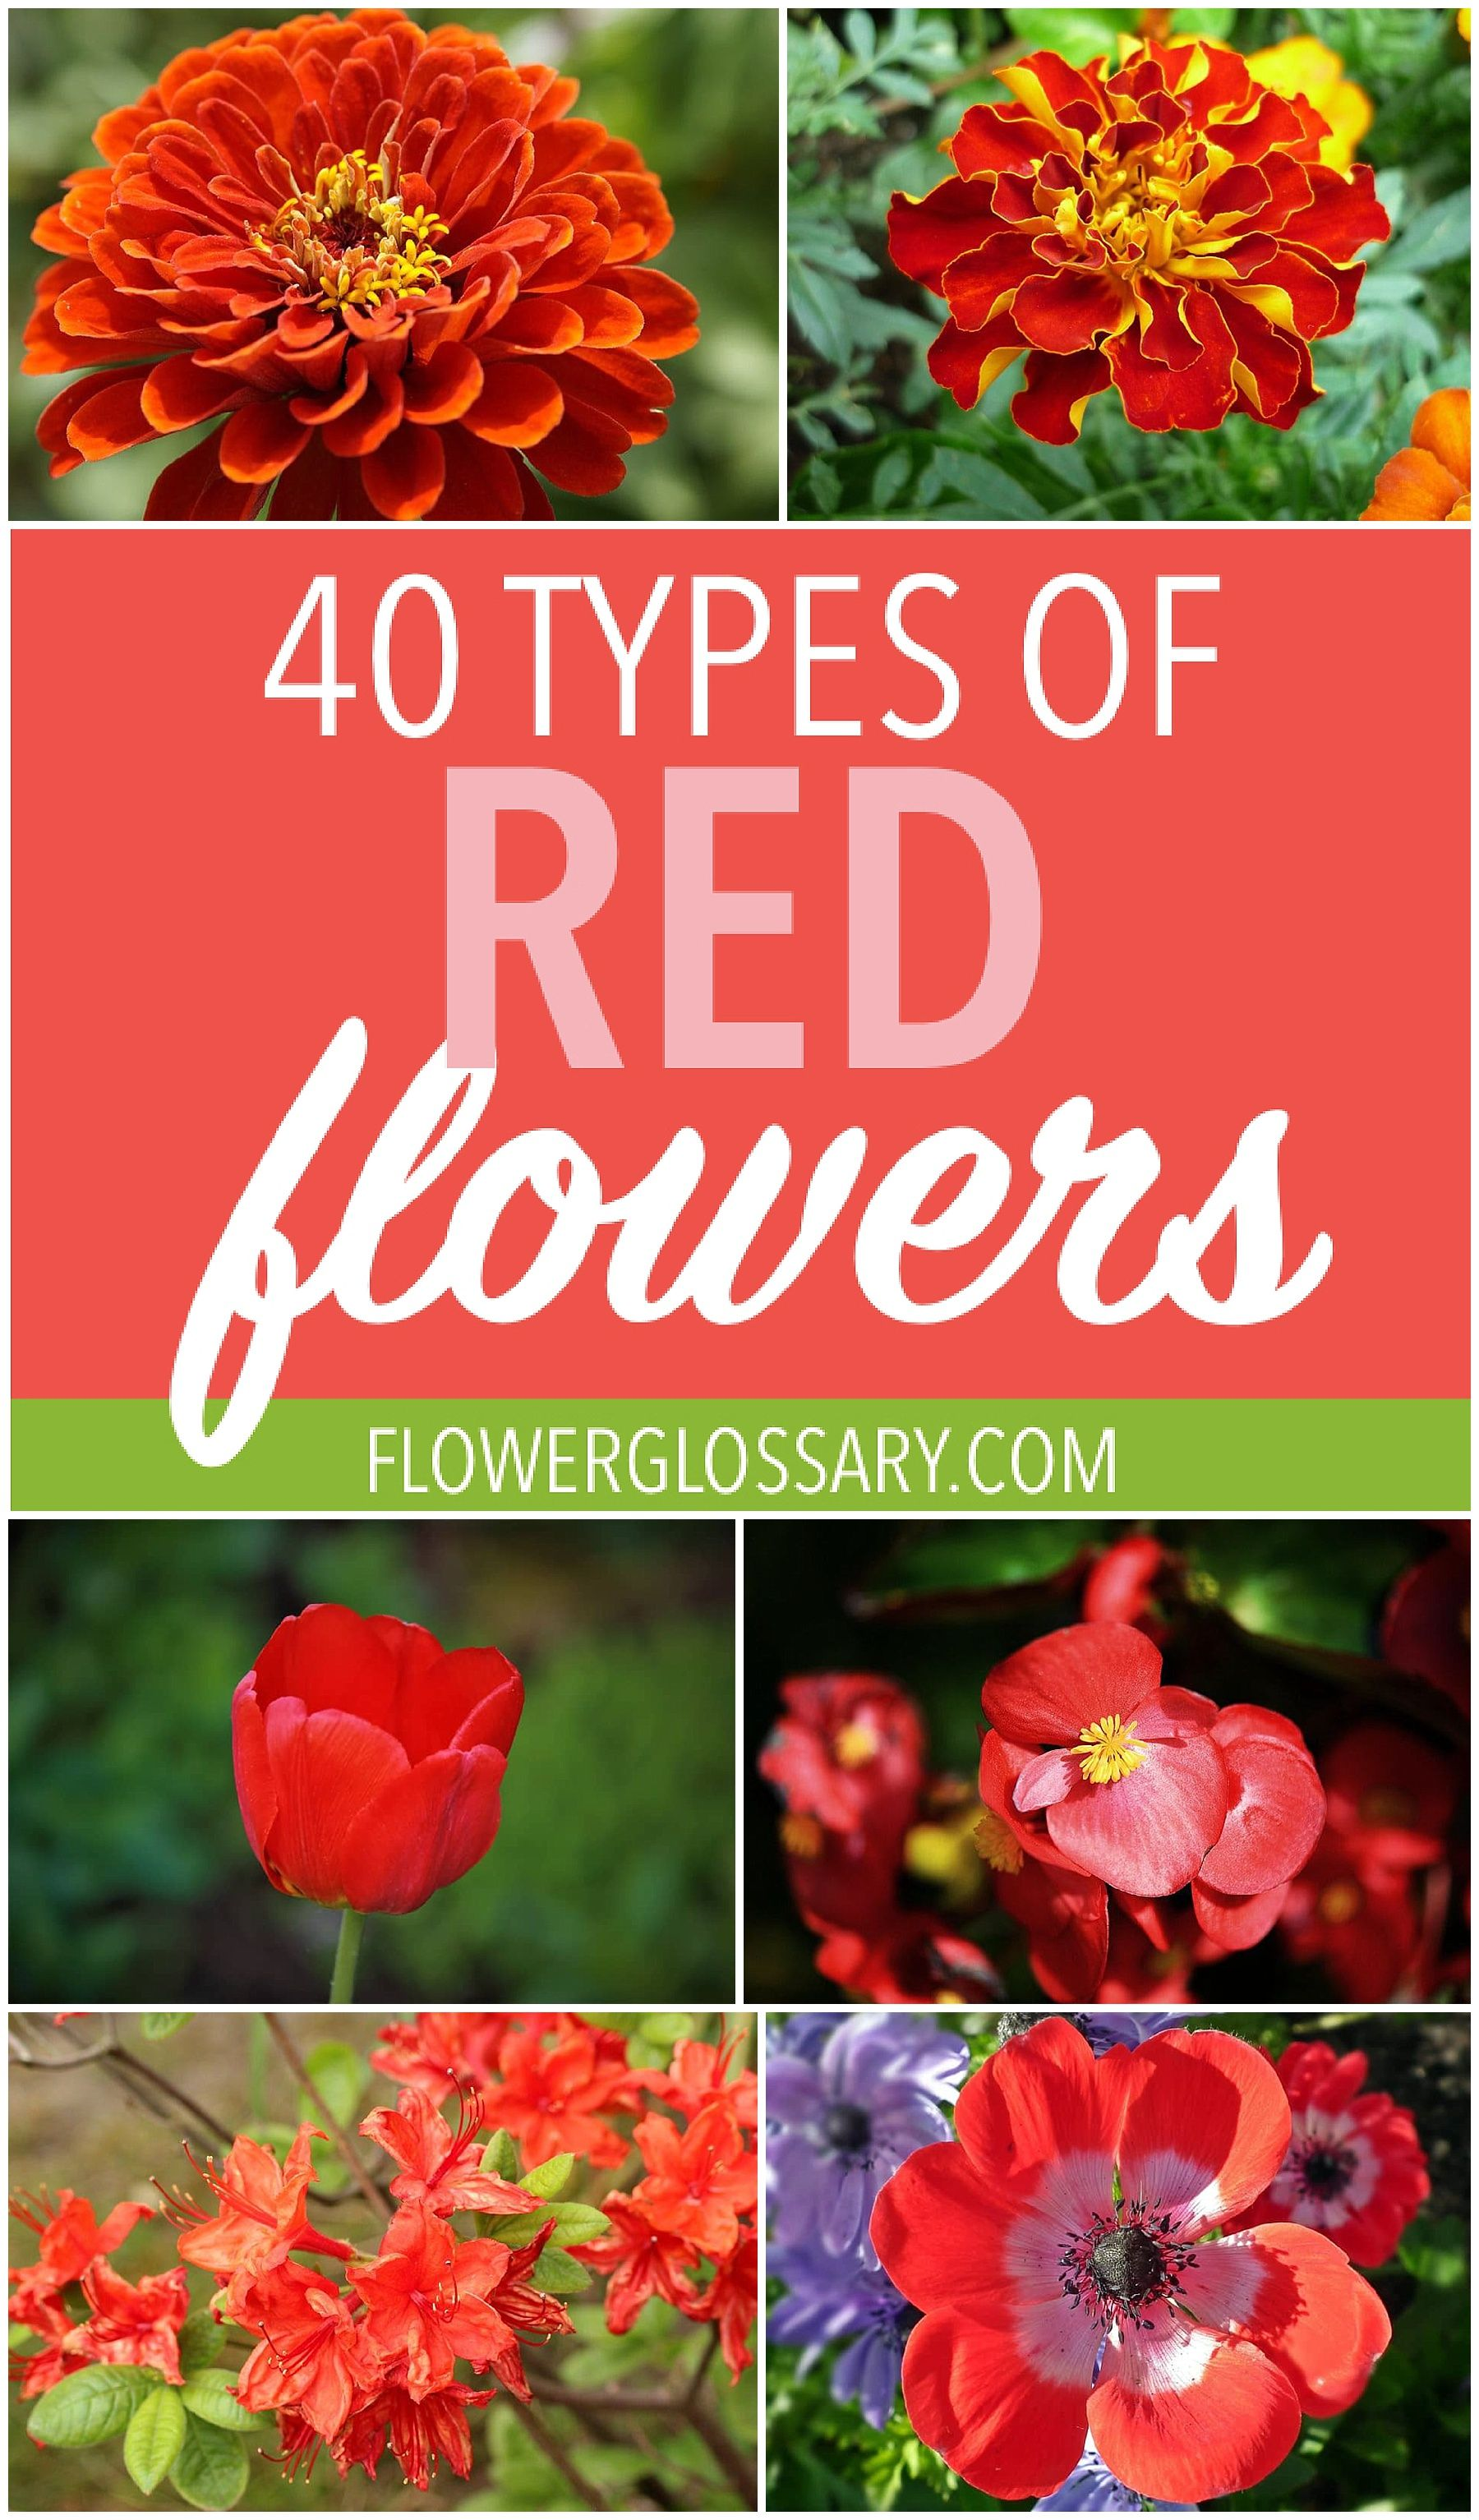 40 Types Of Red Flowers Types Of Red Orange Wedding Flowers Red Flowers